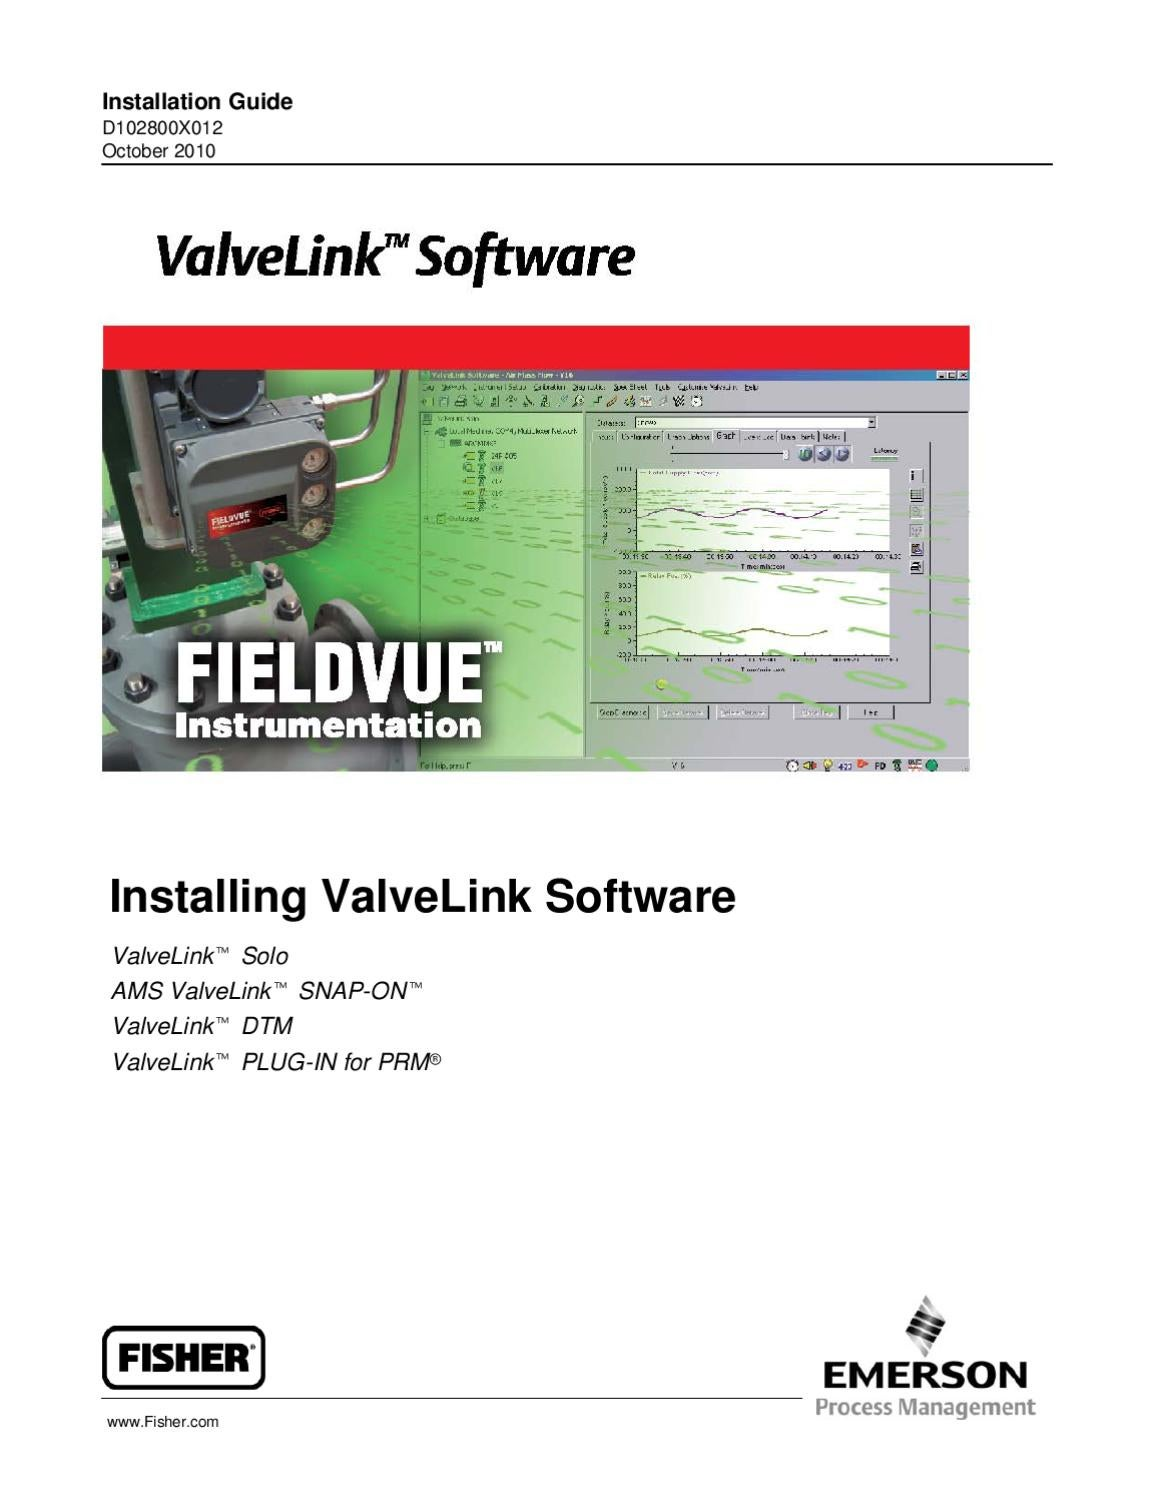 ValveLink Software Installation Guide Oct 2010 by RMC Process